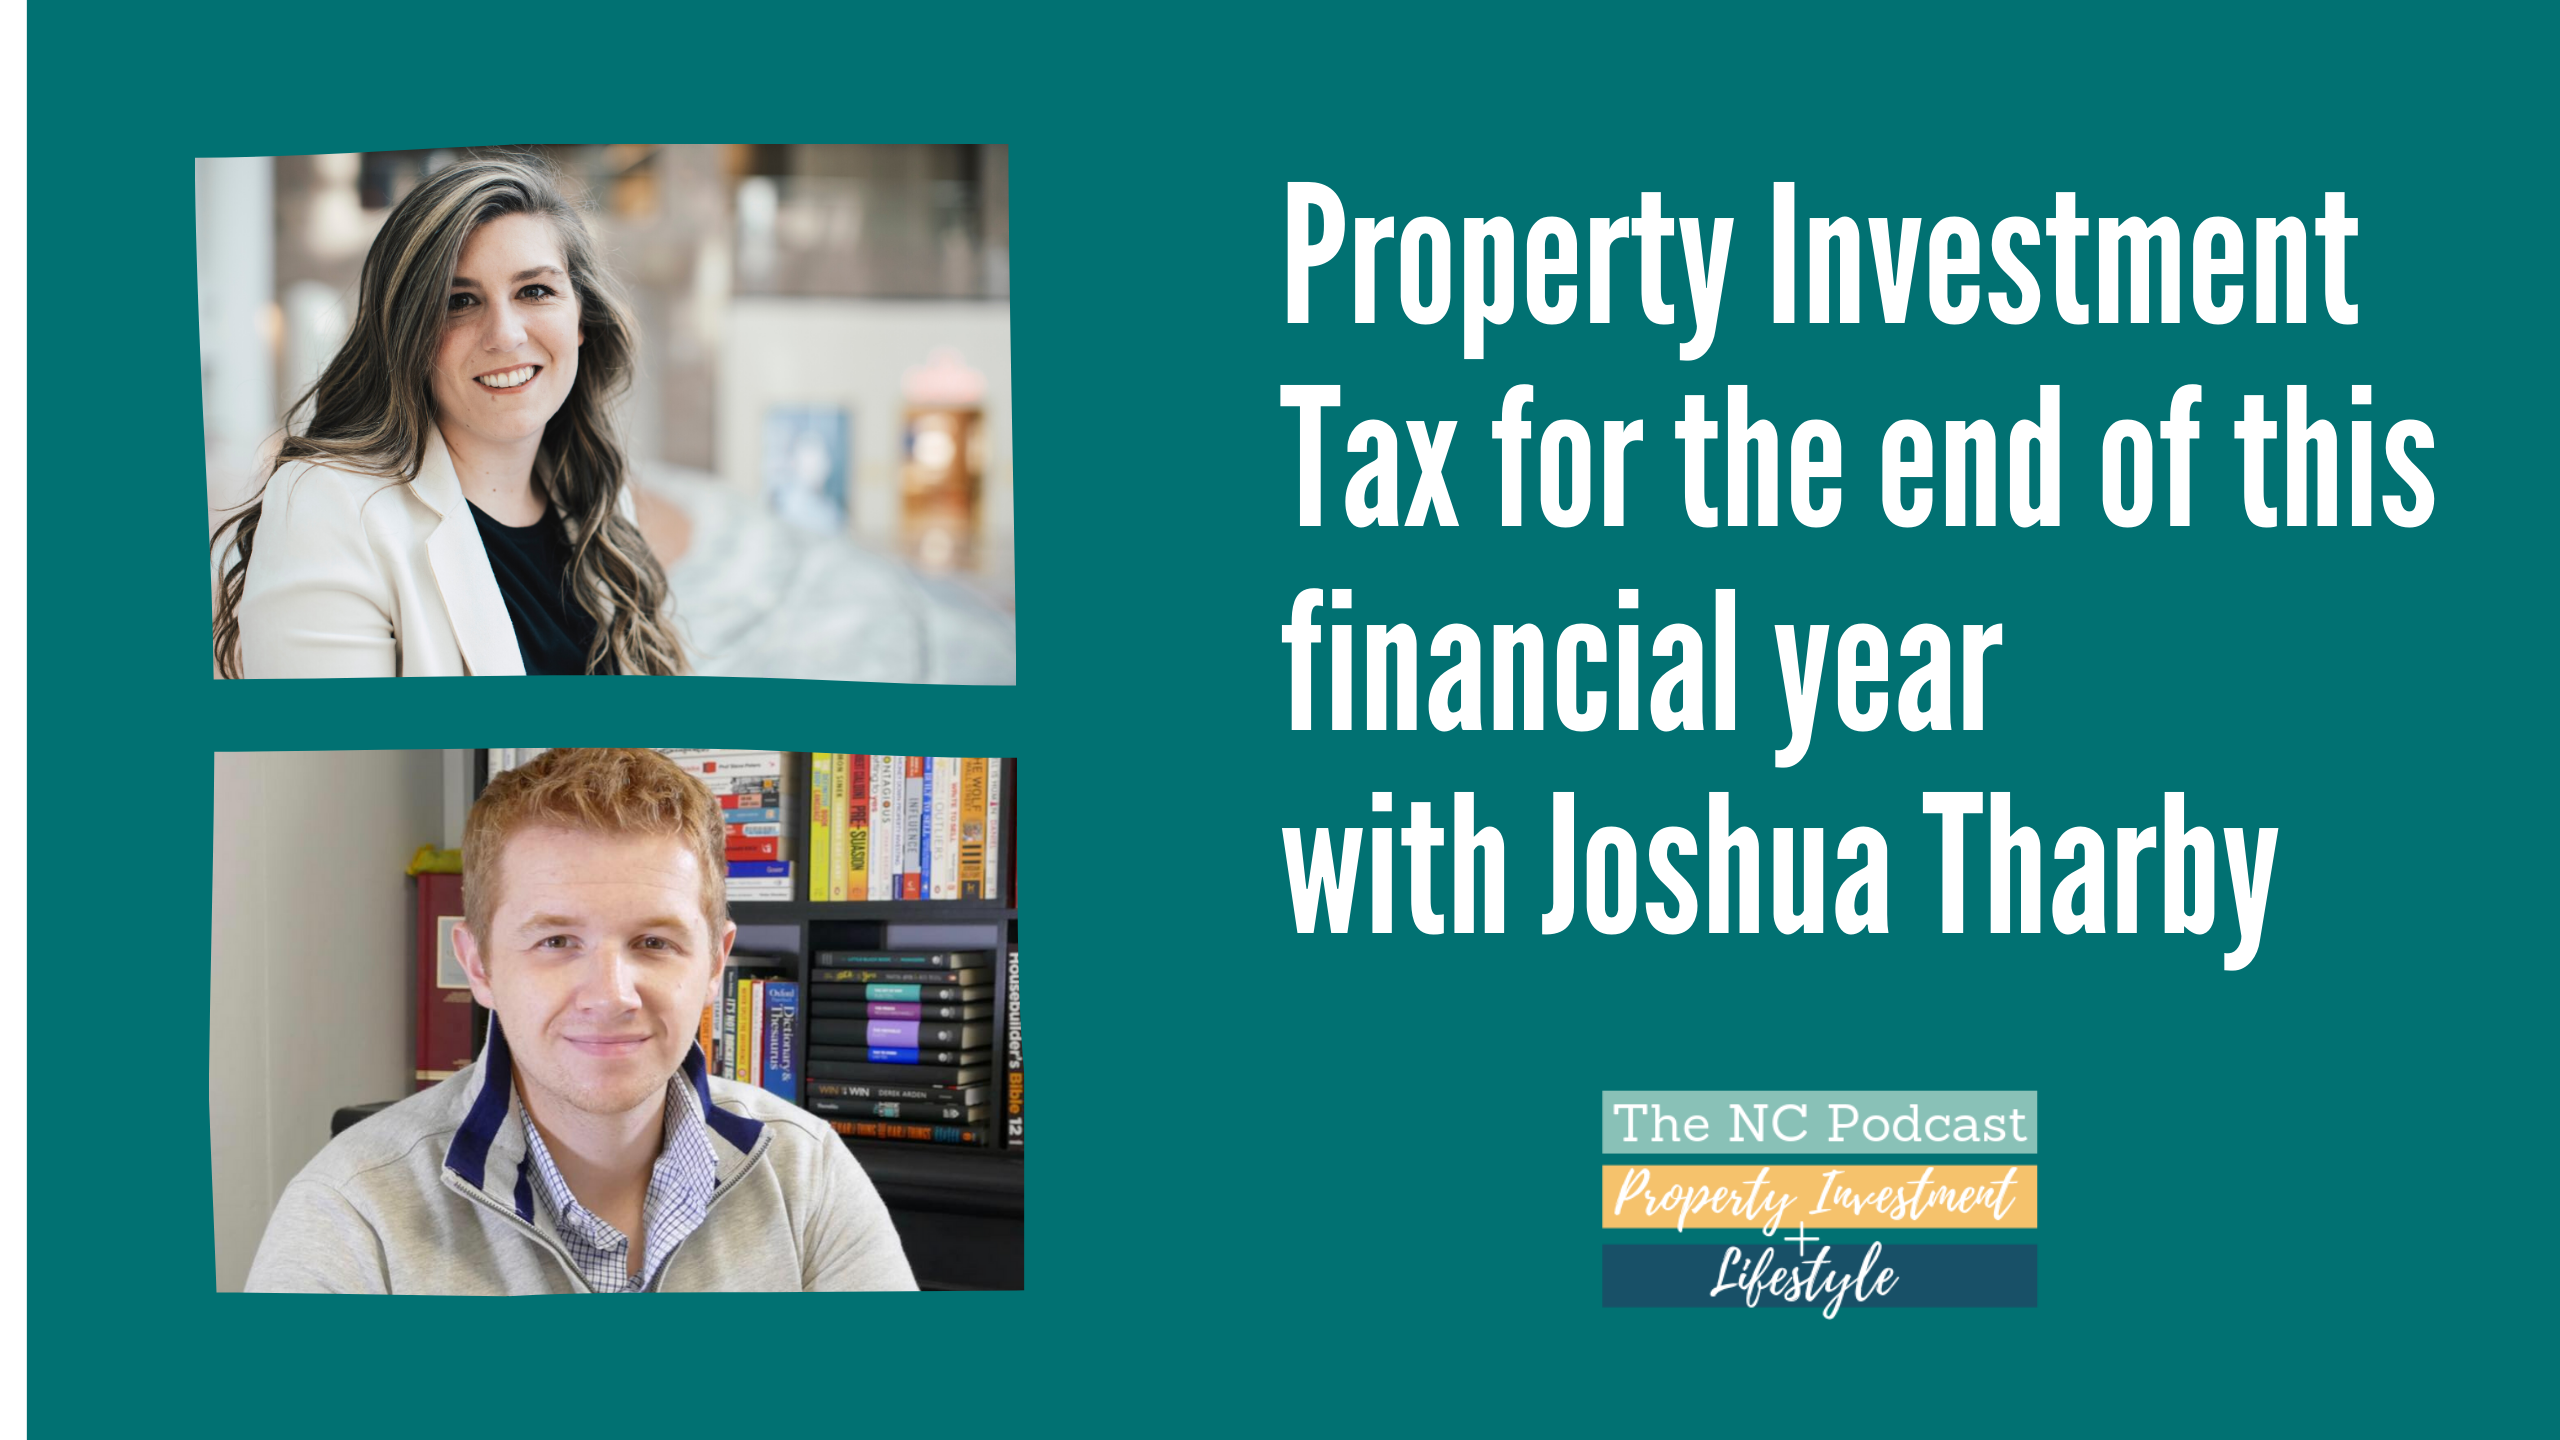 Property Investment Tax for the end of this financial year with Joshua Tharby